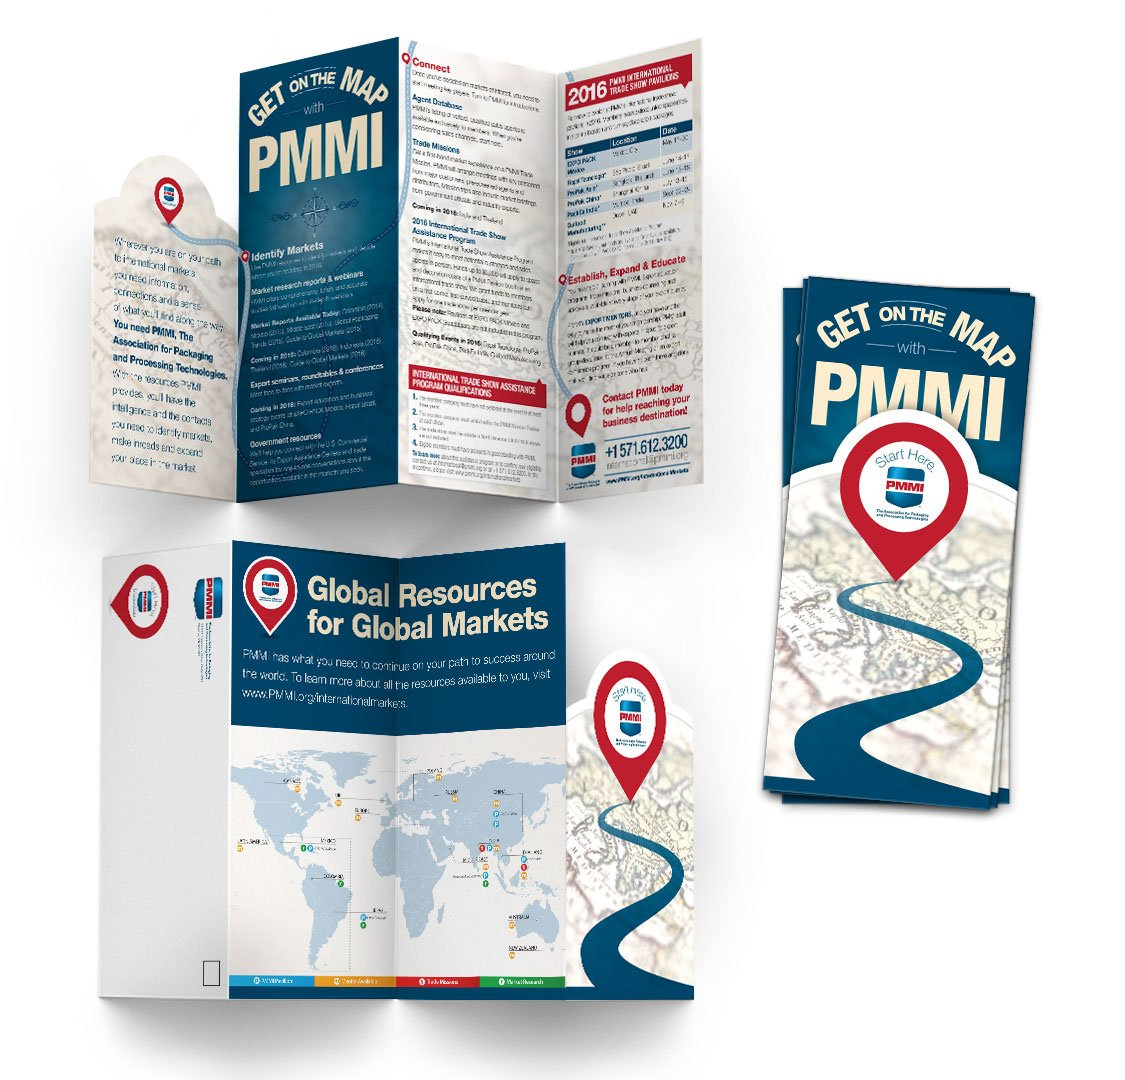 Self-mailing brochure with a die-cut cover, designed for PMMI.